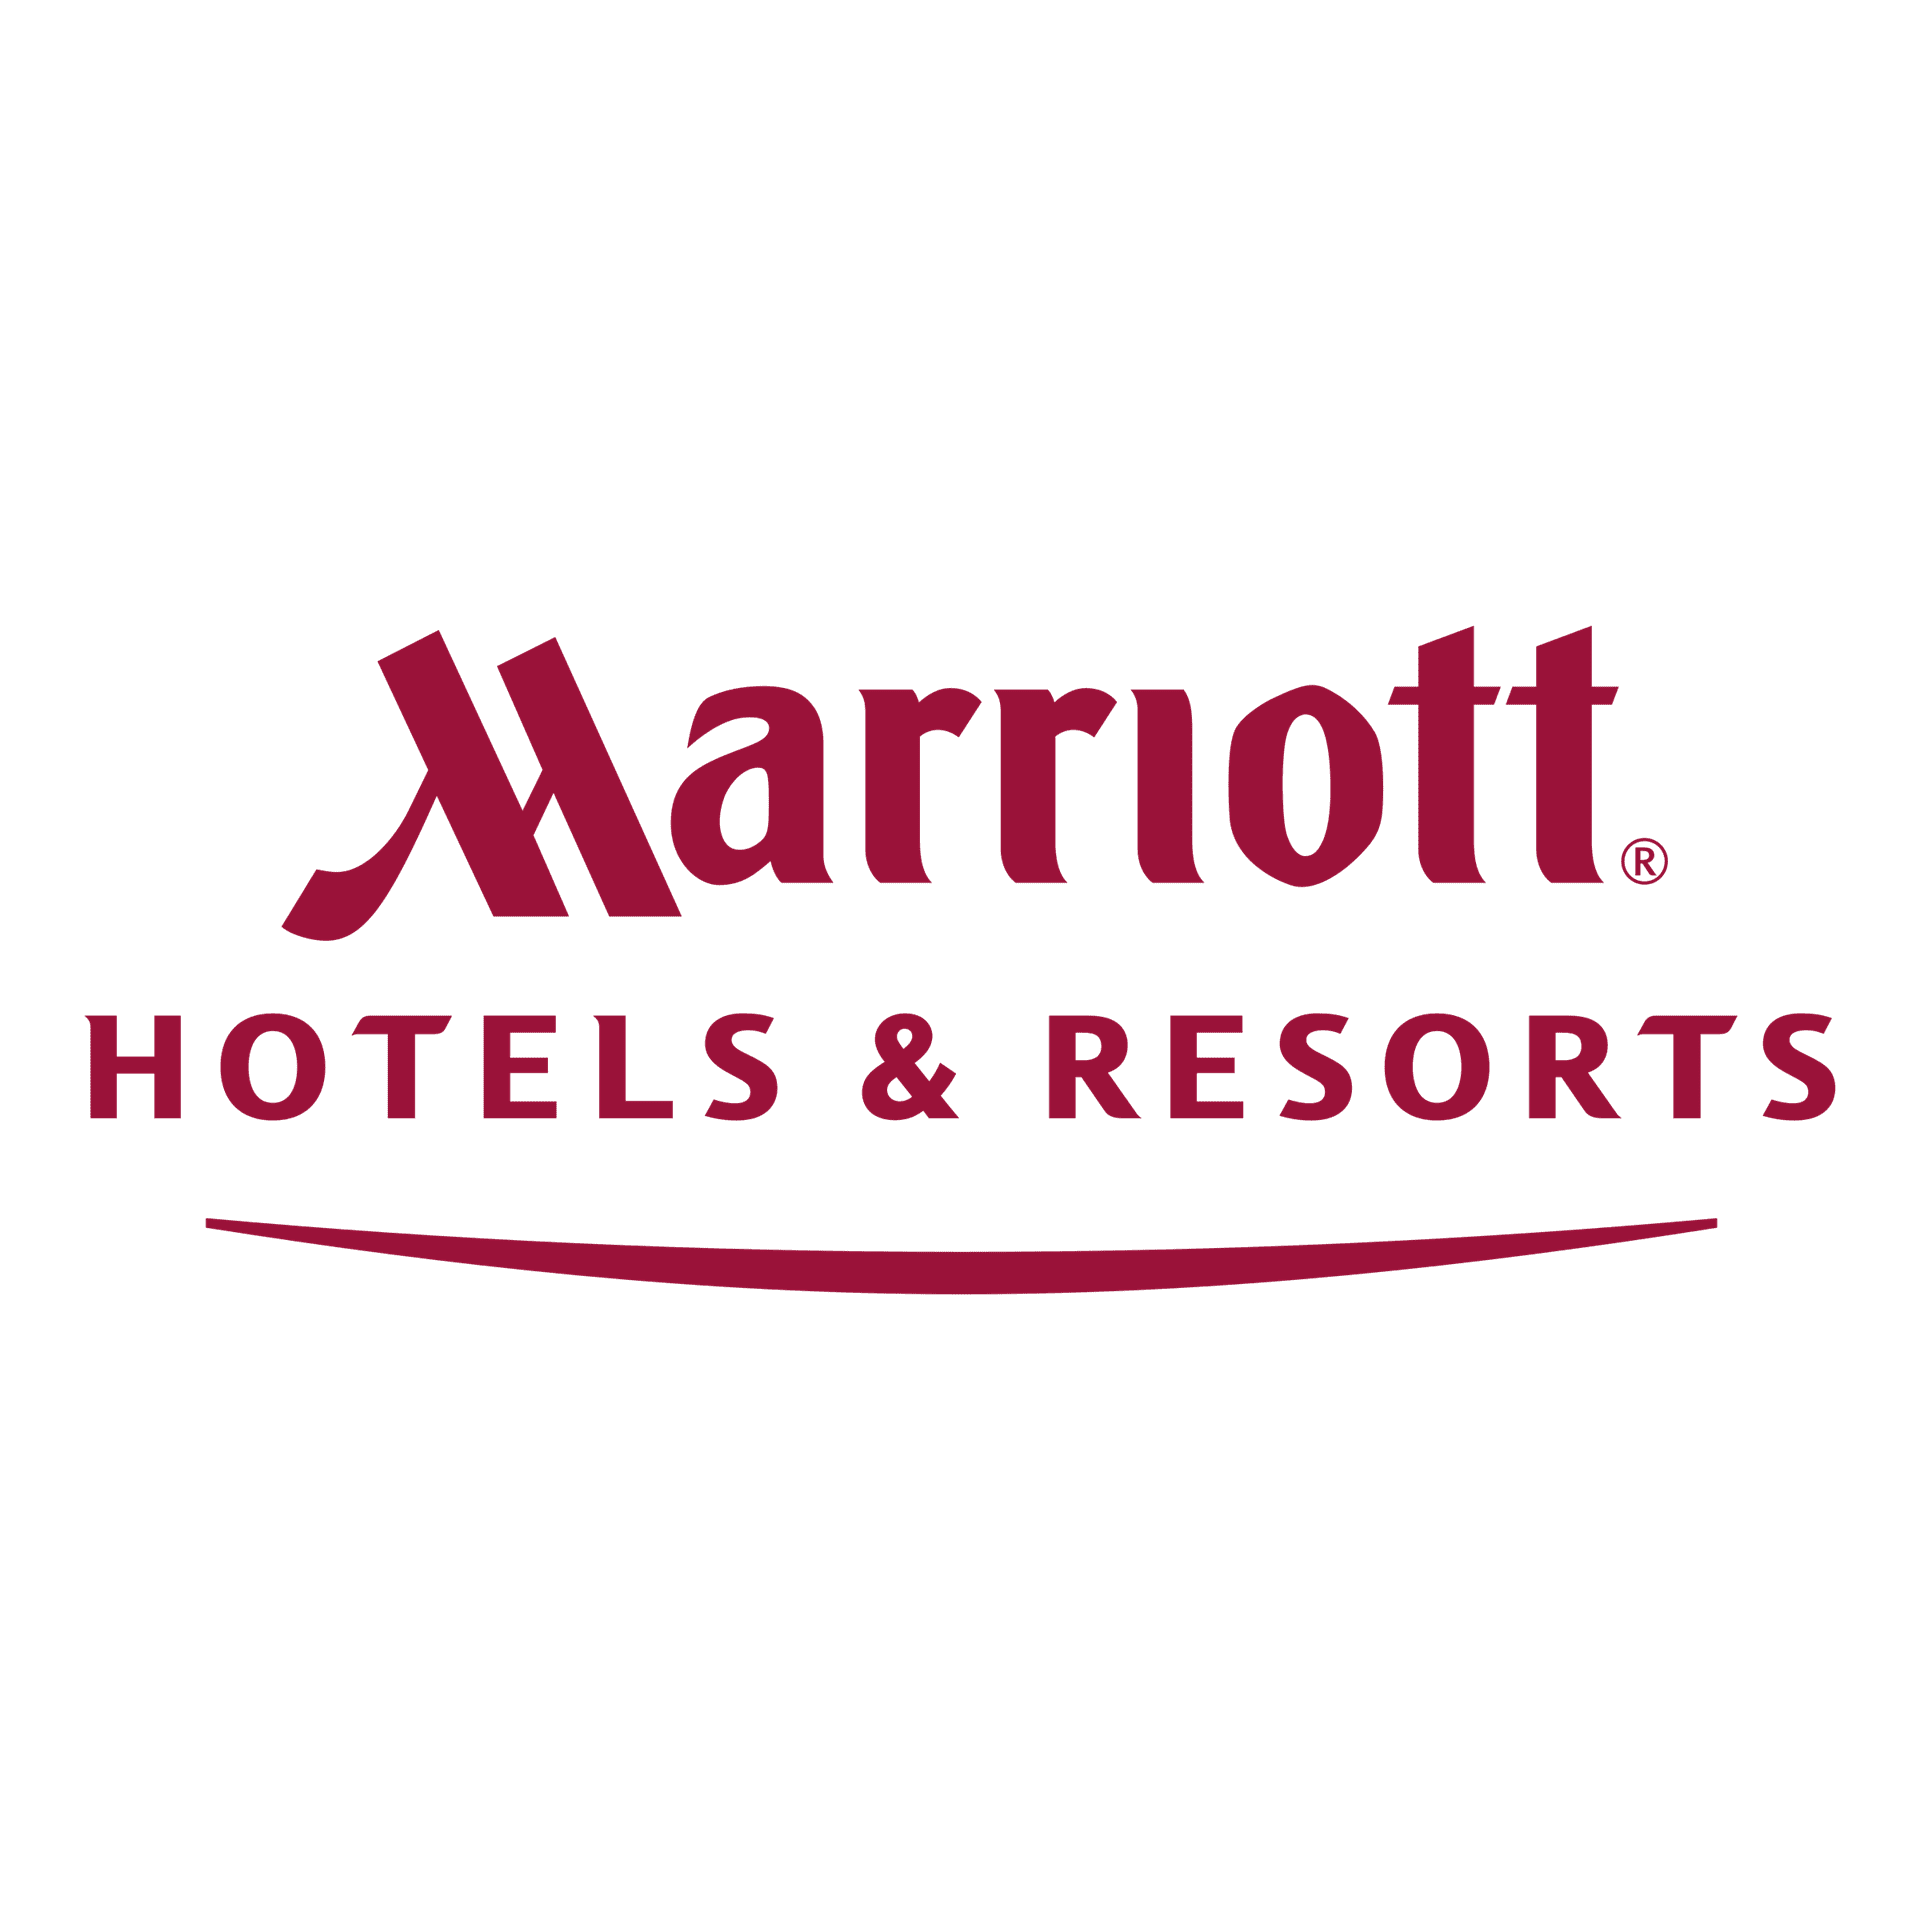 marriott-hotels-resorts-logo-png-transparent